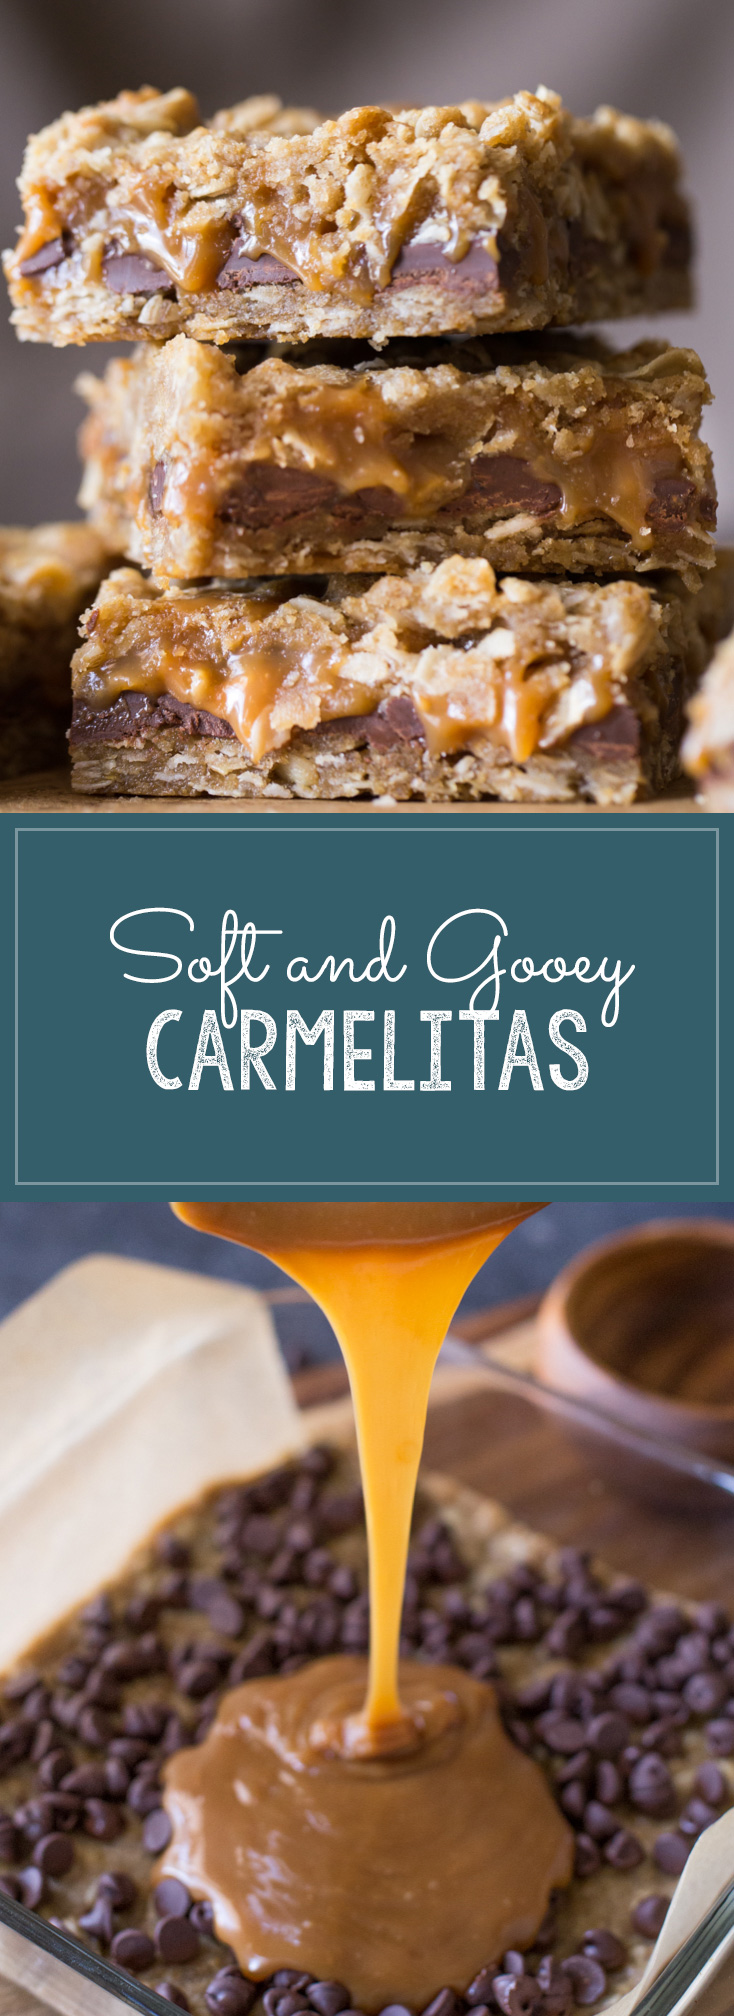 Super easy to make and always a crowd pleaser! Soft, gooey and delicious!